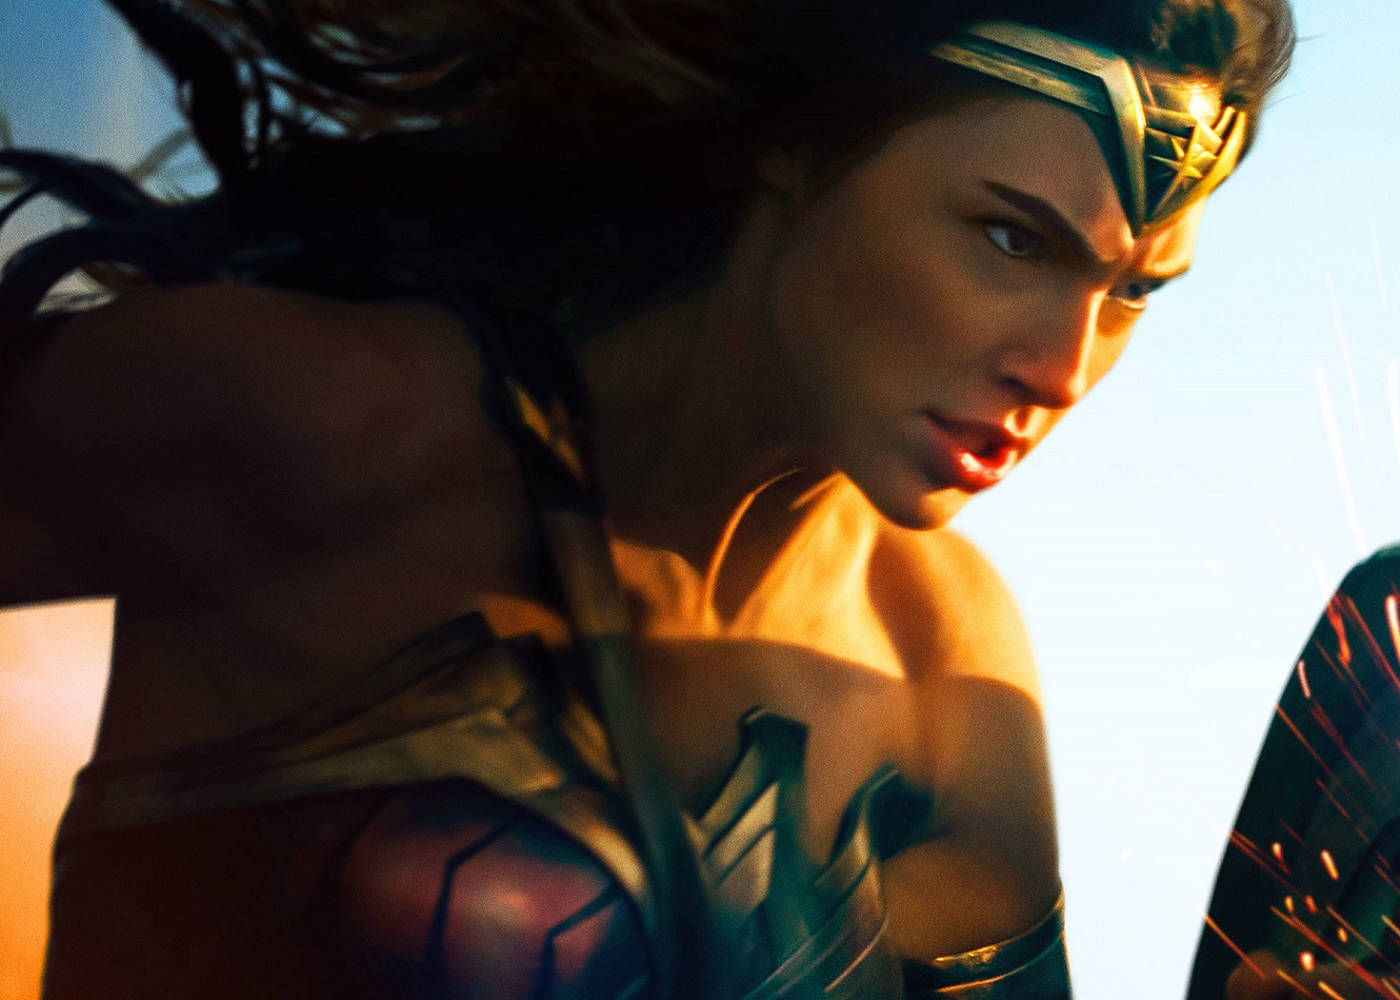 New Wonder Woman Poster Features Diana Prince and Steve Trevor